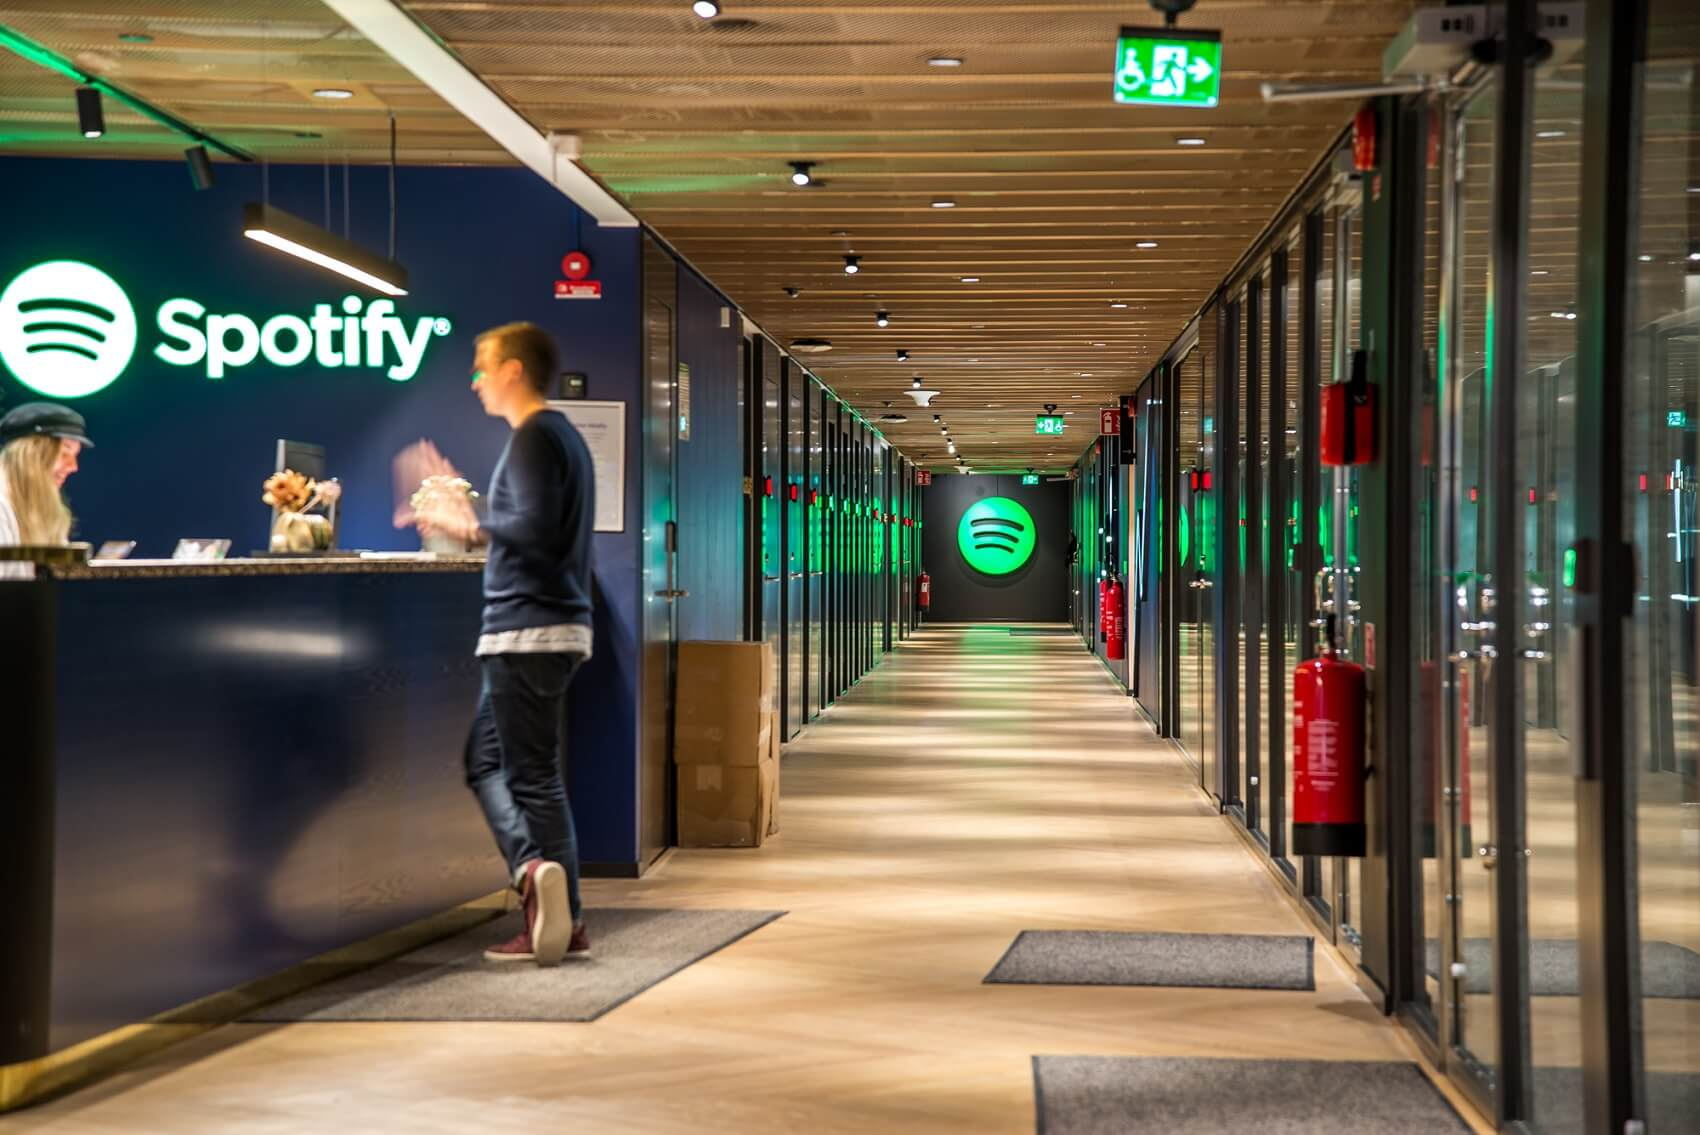 Spotify Stock Dips 5% Despite Adding 8 Million Paid Subscribers in Q2